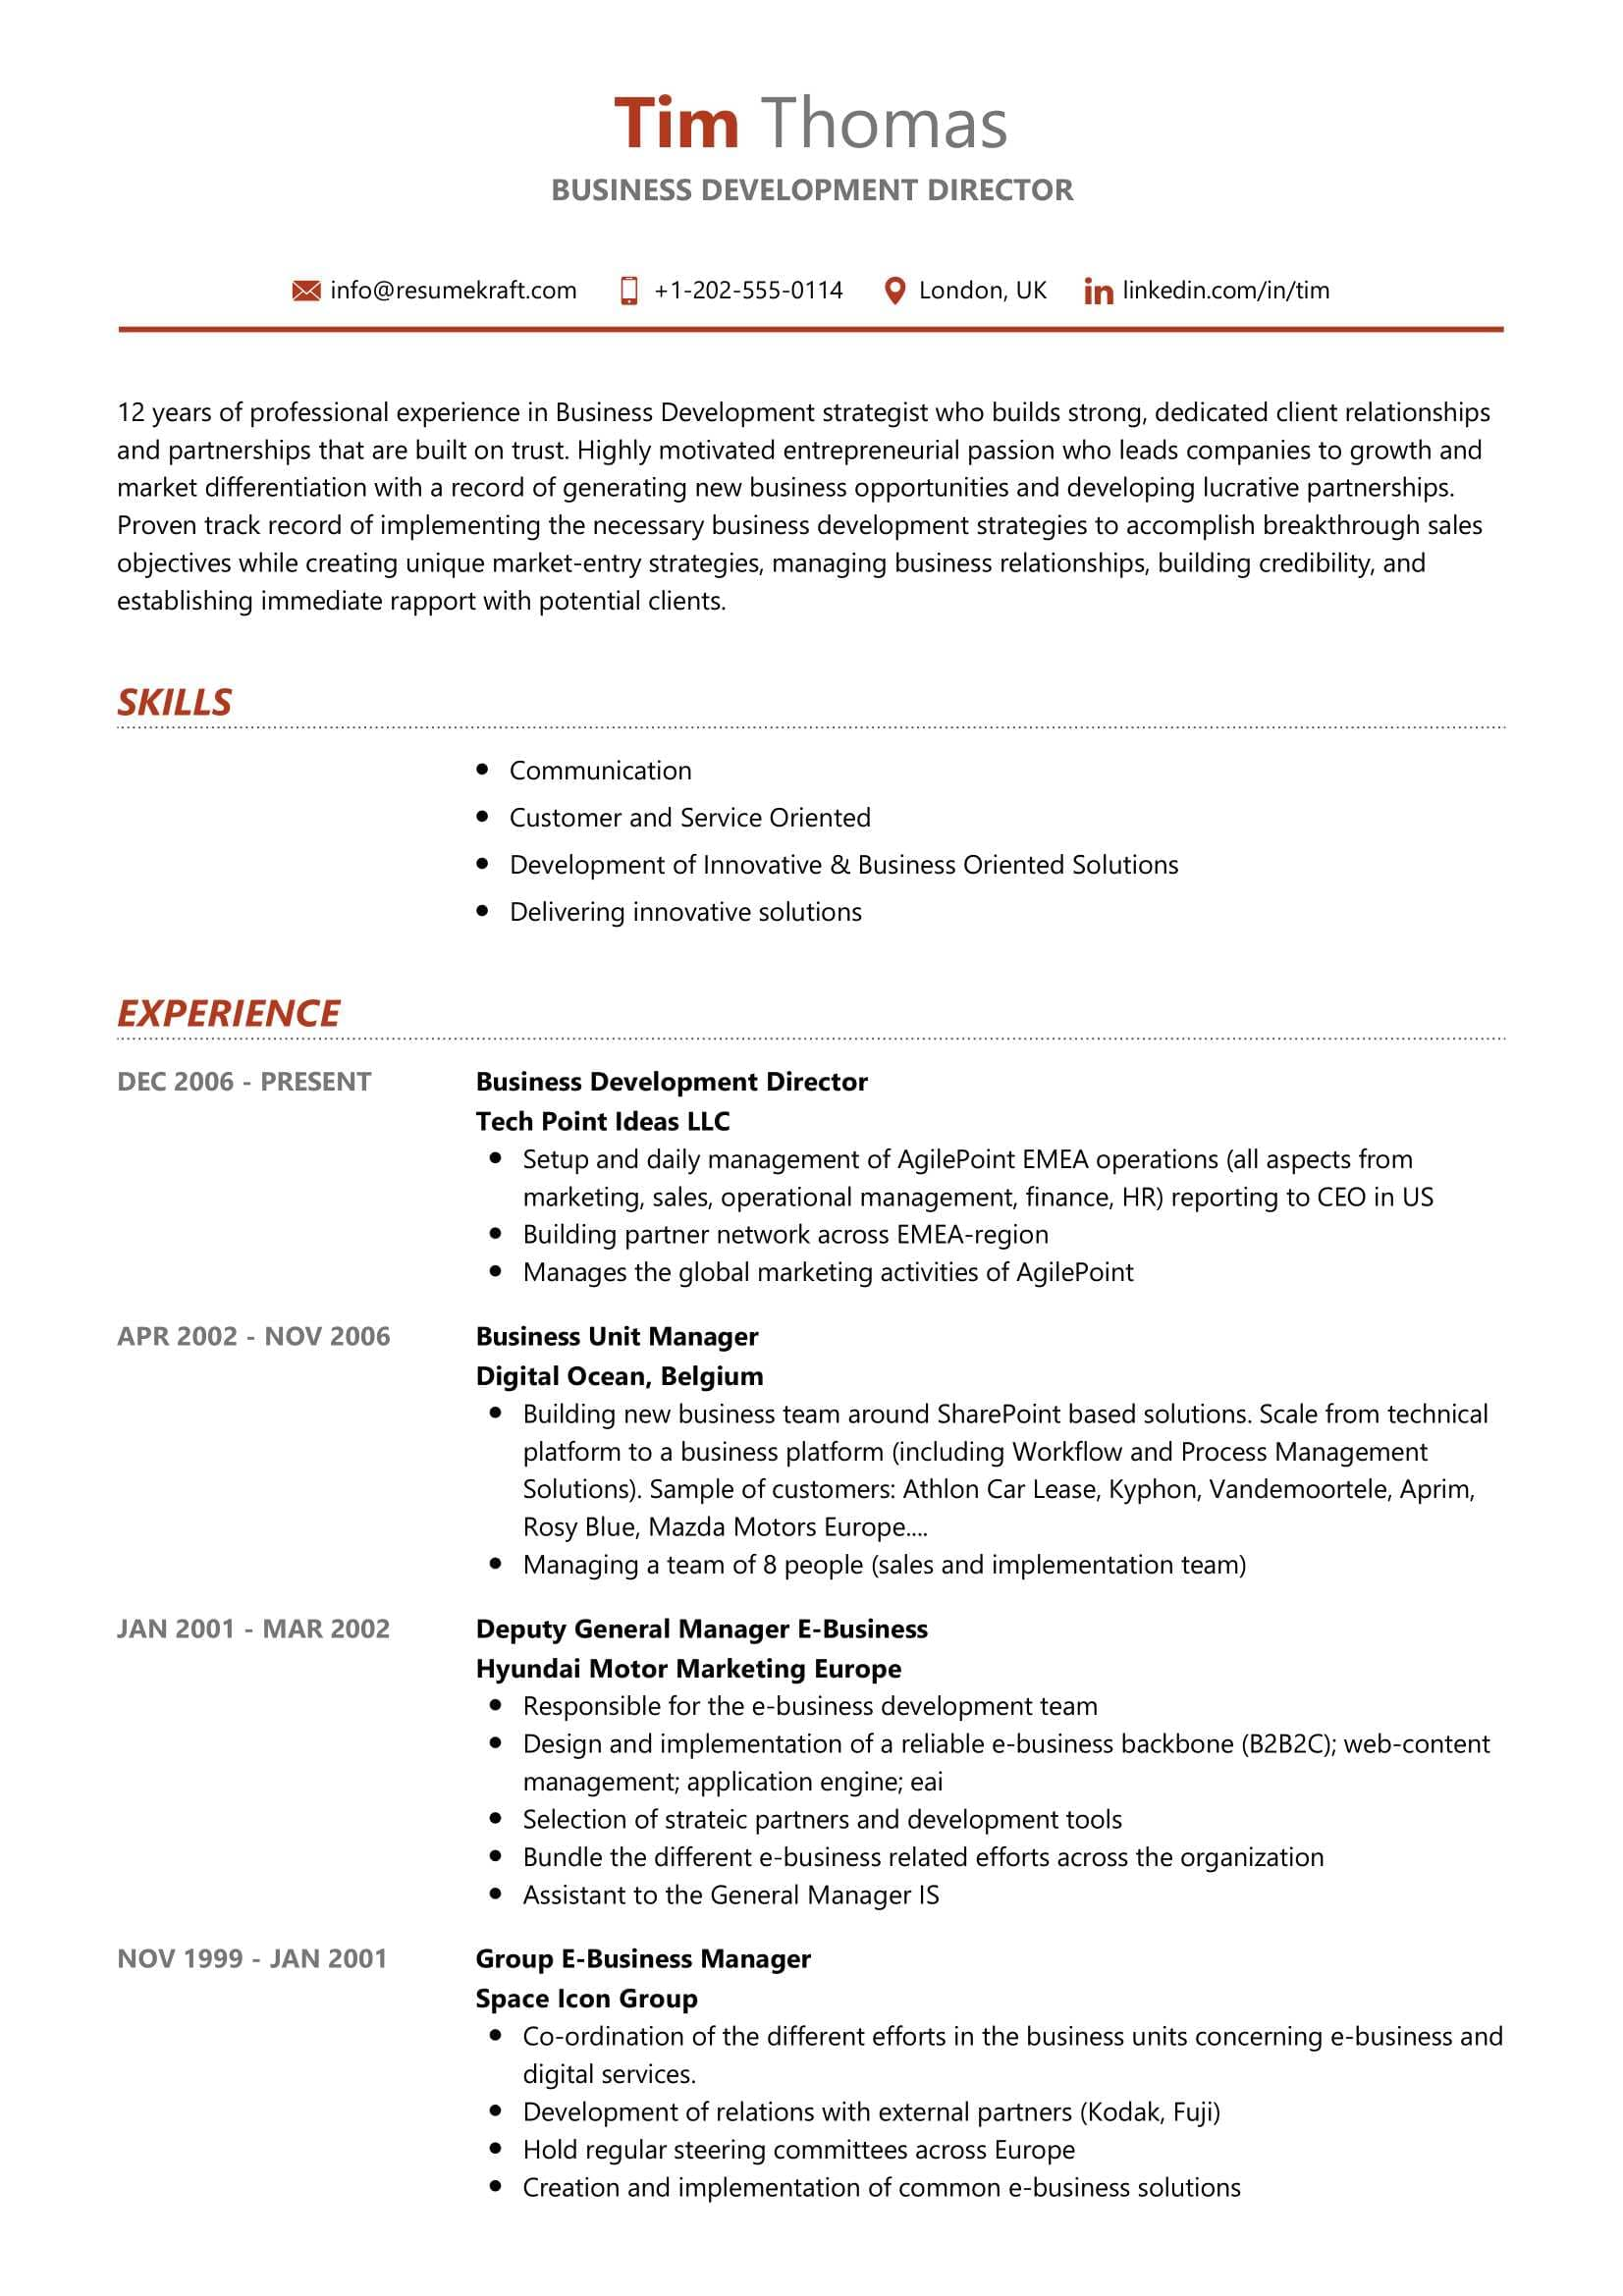 business development director resume sample resumekraft of yoga instrument technician Resume Director Of Development Resume